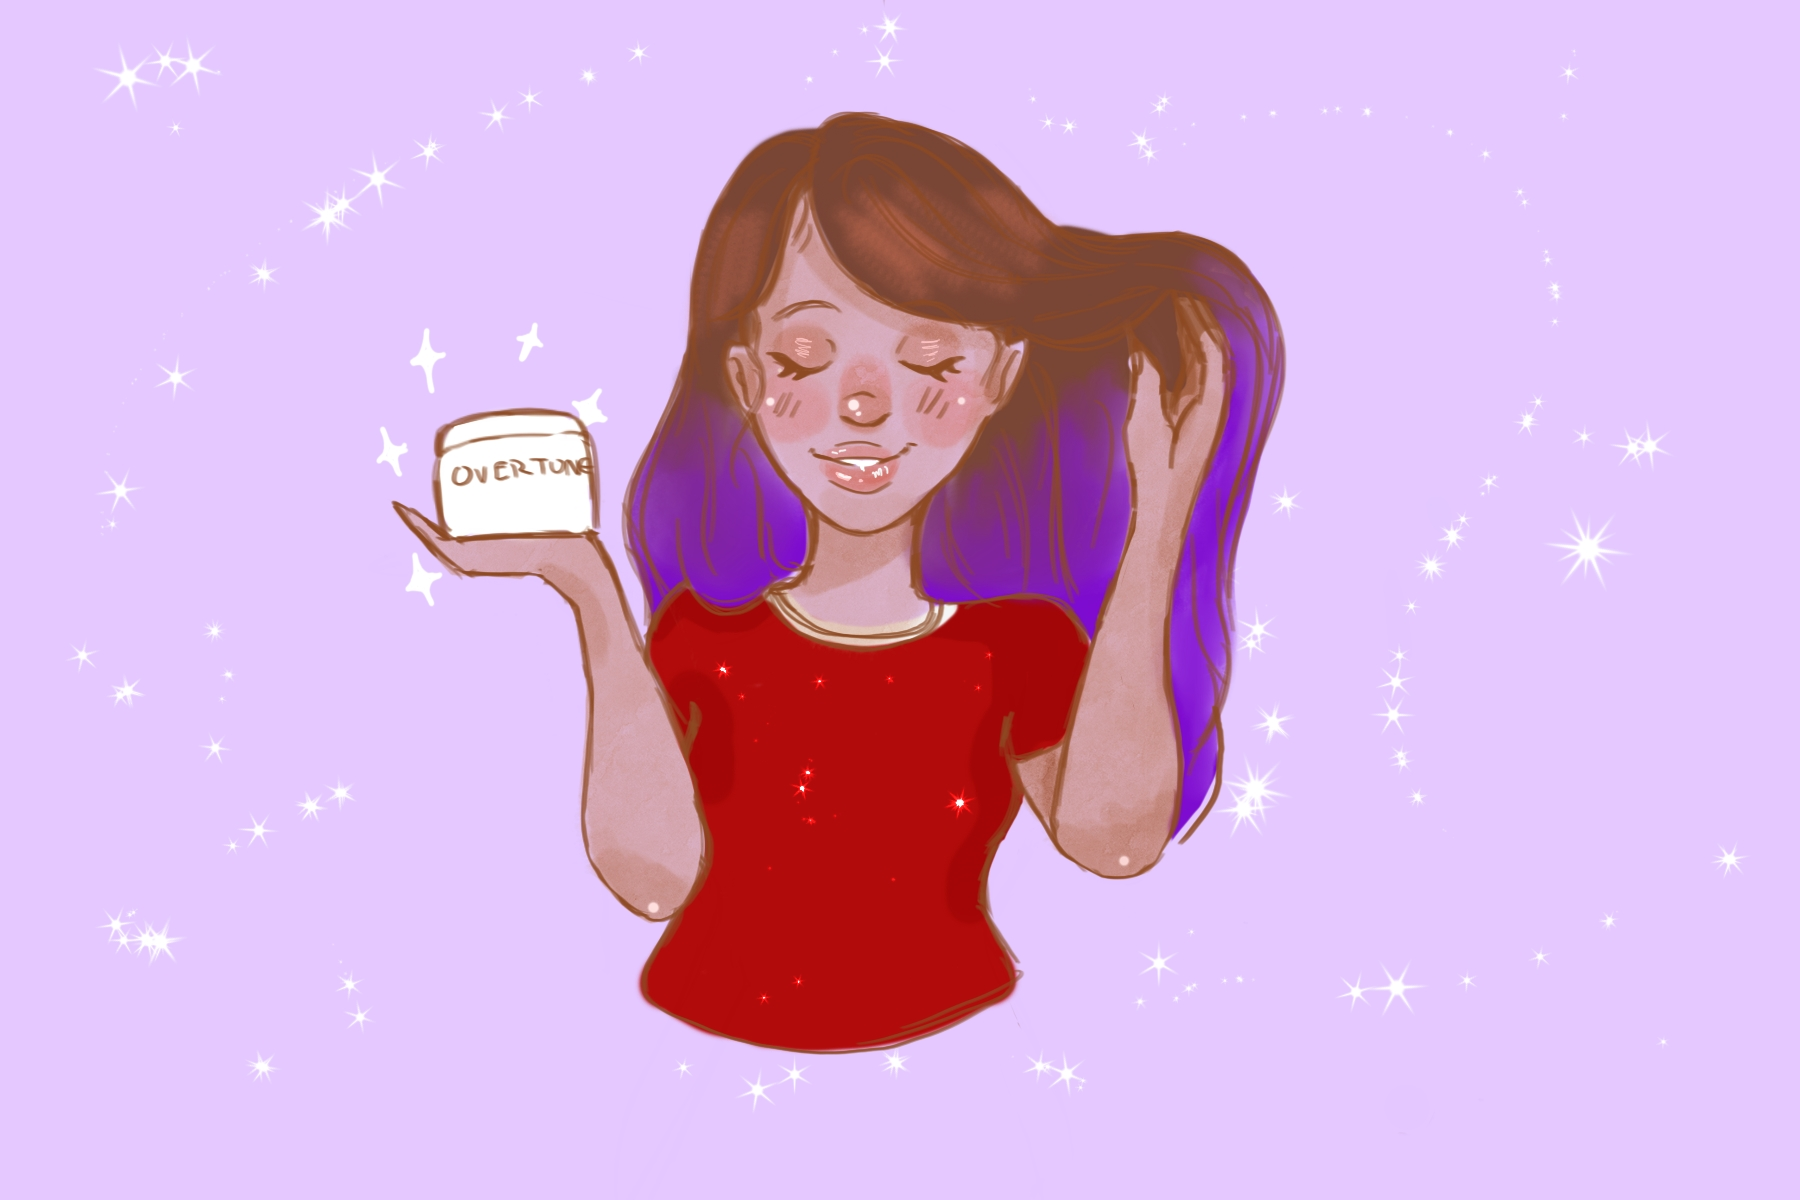 Illustration of woman using Overtone conditioner